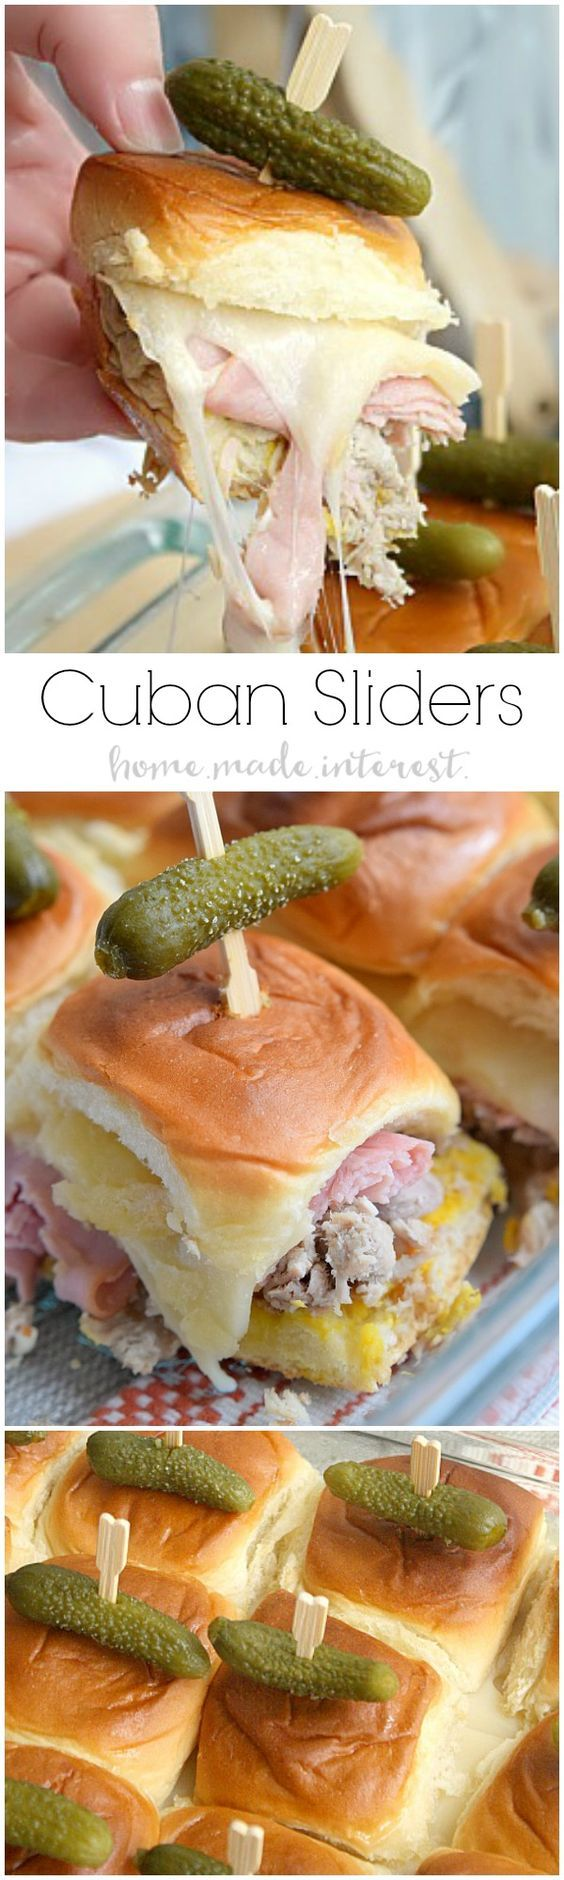 This Cuban sliders recipe is filled with ham, pork, and gooey cheese, all topped with a mini pickle! It is a great slider recipe for parties because you can make them ahead of time and then bake them before your guests arrive. It's a game day recipe your family and friends will love! #OscarMayerNatural #sponsored